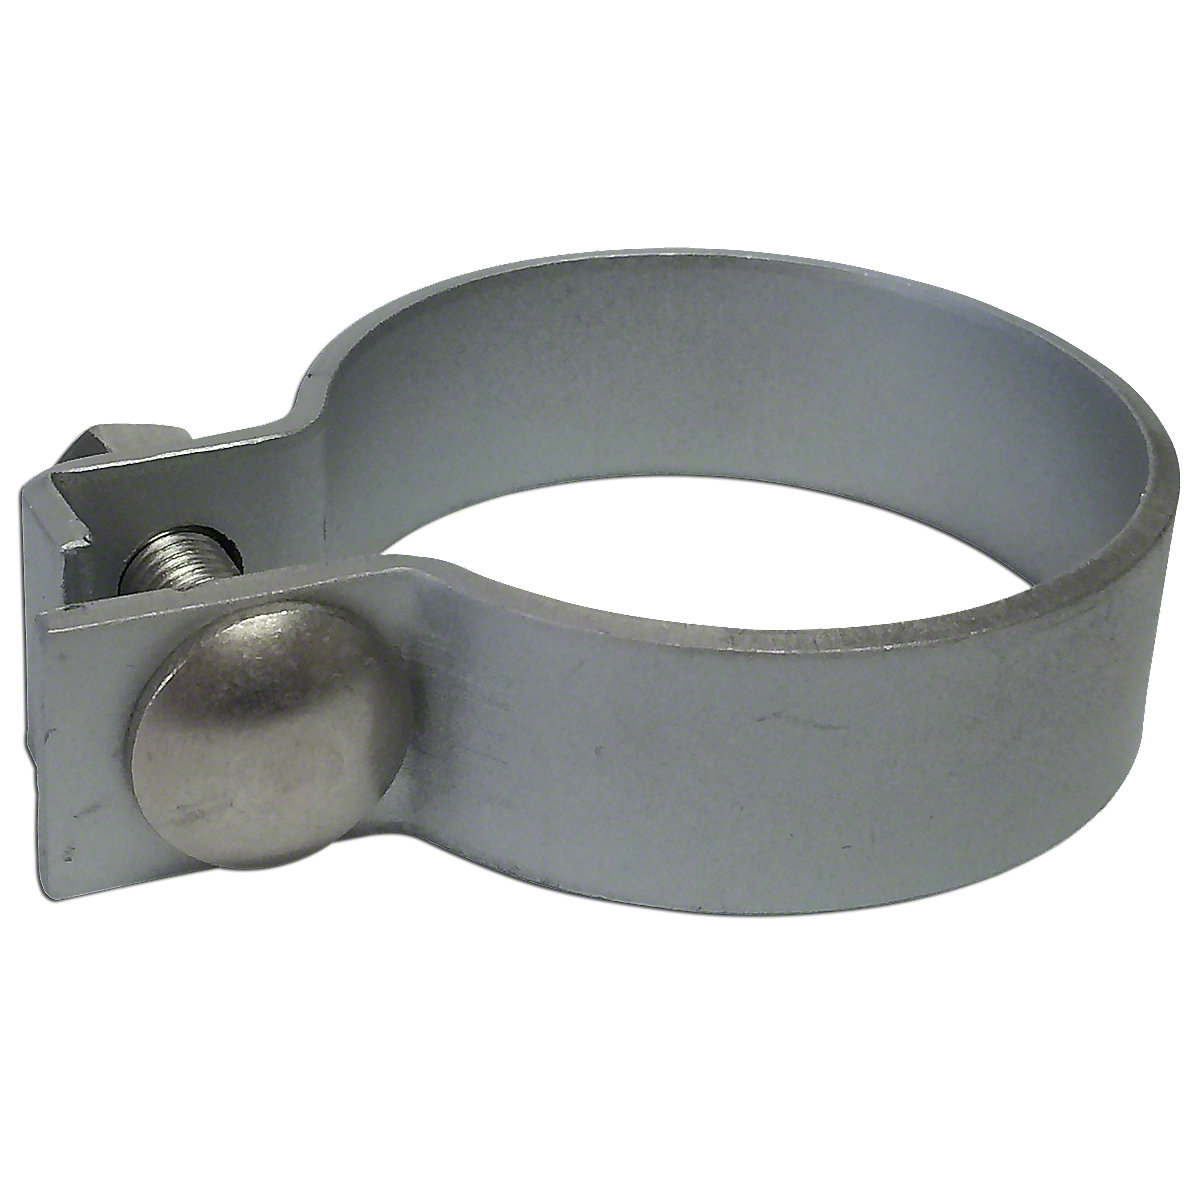 2-1/2 Painted Steel Muffler Clamp For Massey Harris: Challenger, Colt 21, GP 4WD, Mustang 23, Pacemaker, Pacer 16, Pony, 101 Jr, 101 Sr, 102 Jr, 102 Sr, 20, 22, 30, 33, 44, 50, 55, 81, 82, 201, 202, 203, 303, 333, 404, 444, 555, 20k, 22k, 30k, 44 Special